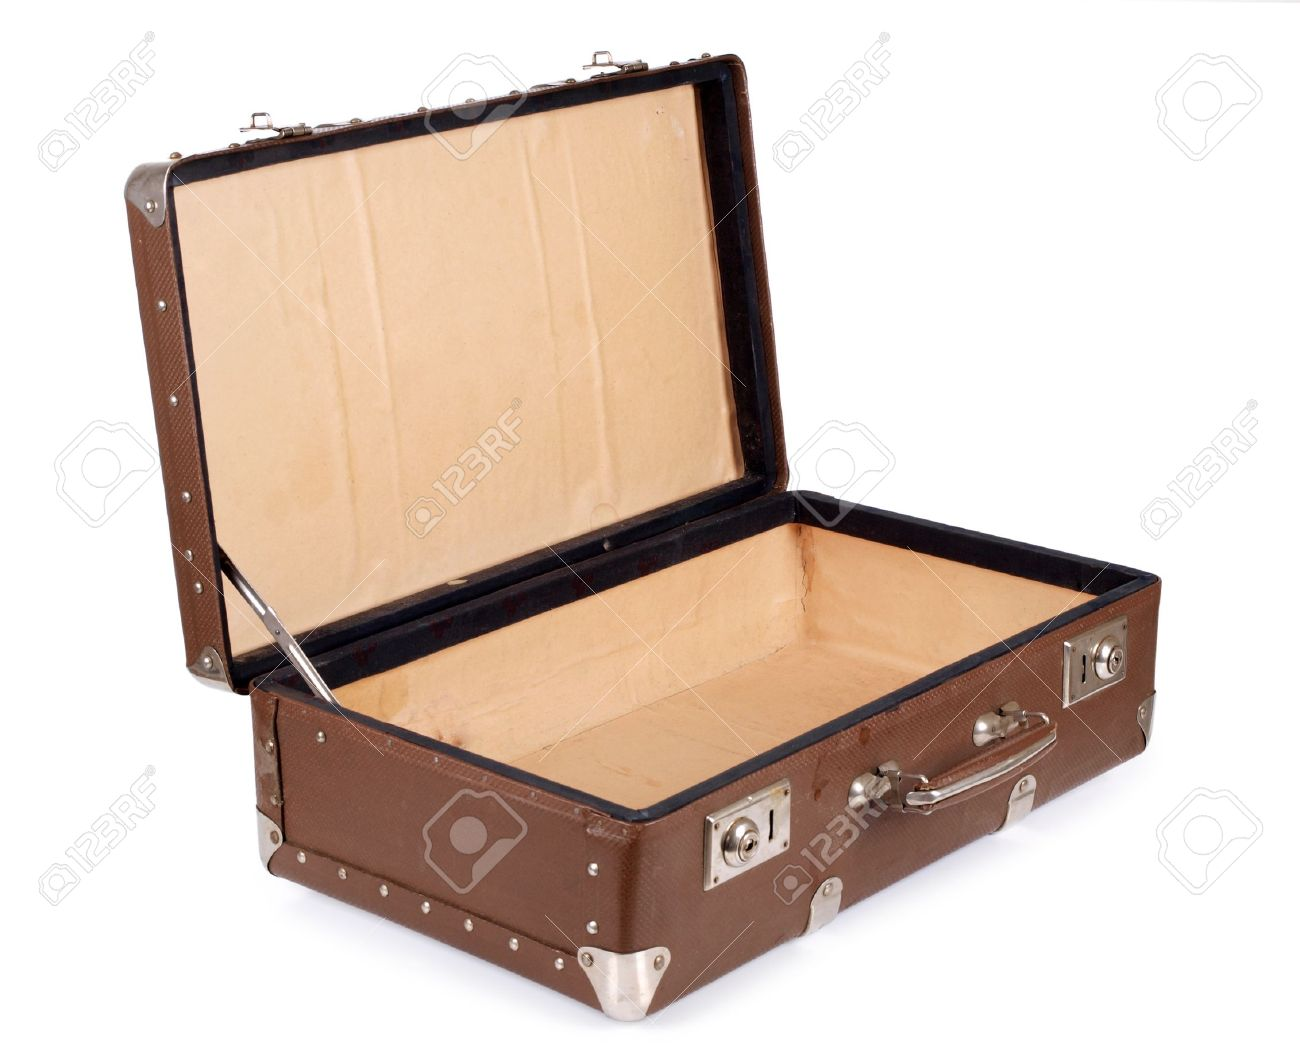 Color photo of an old suitcase on white background Stock Photo - 9426424